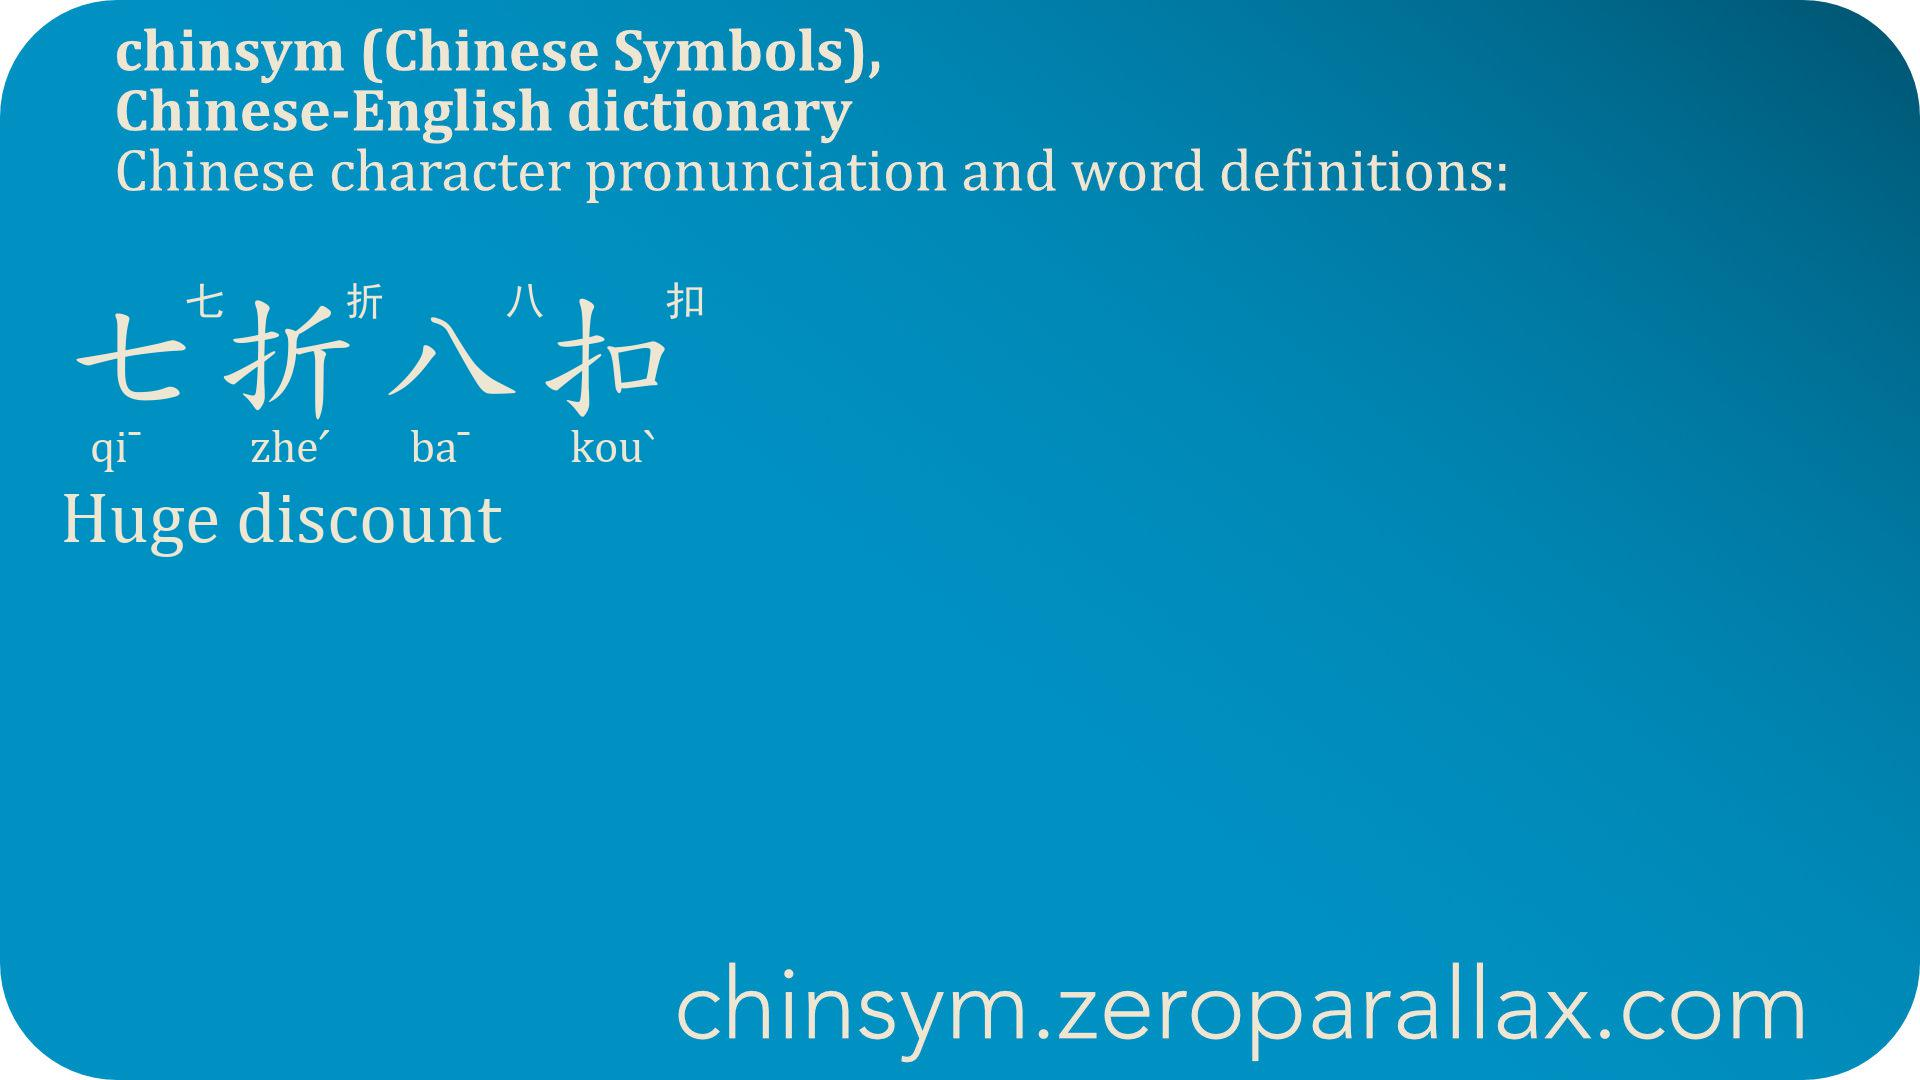 七折八扣  (qi¯ zheˊ ba¯ kouˋ) : Huge discount, Make allowance for exaggeration, Take into account the possibility of inaccuracy. chinsym.zeroparallax.com